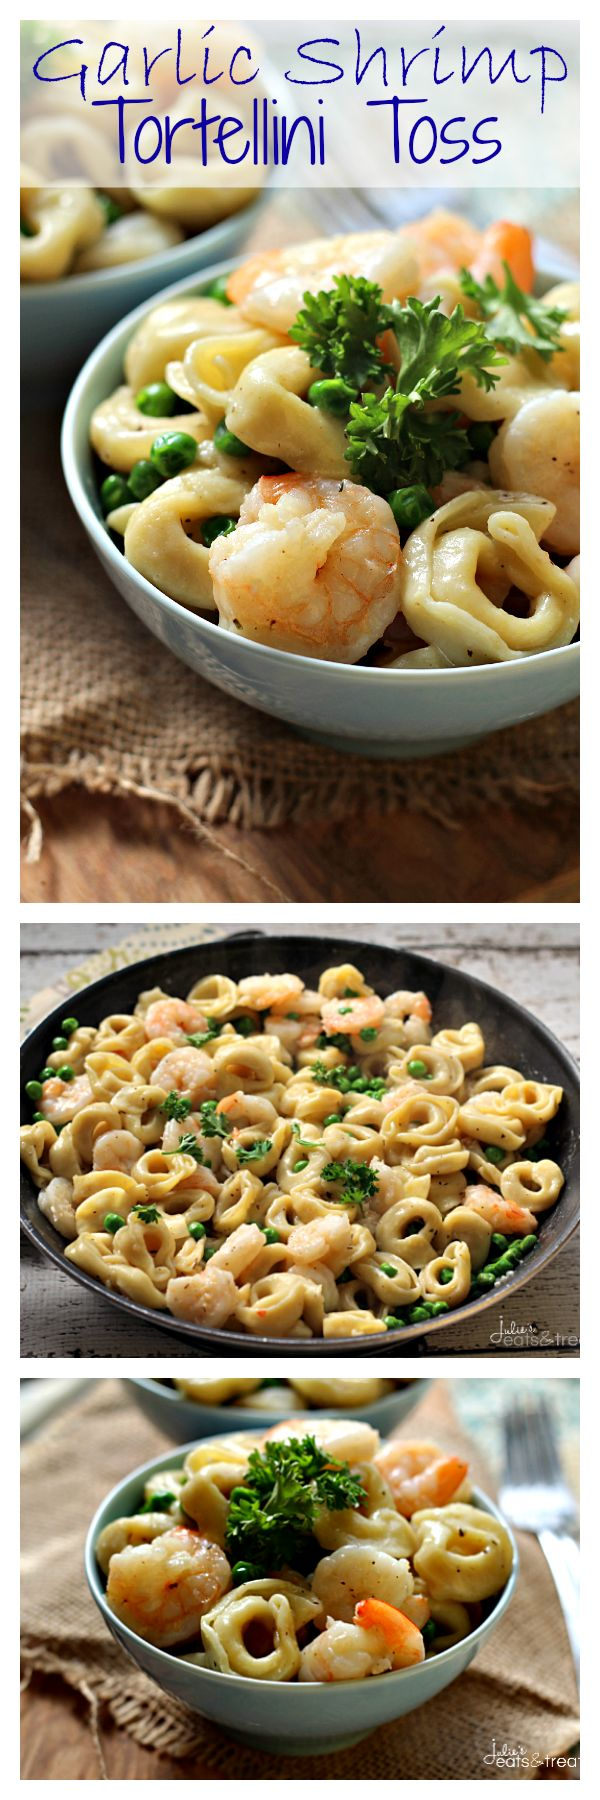 Garlic Shrimp Tortellini Toss ~ Amazing Meal Ready on the table in 20 Minutes! Loaded with Peas, Cheese Tortellini  Shrimp!